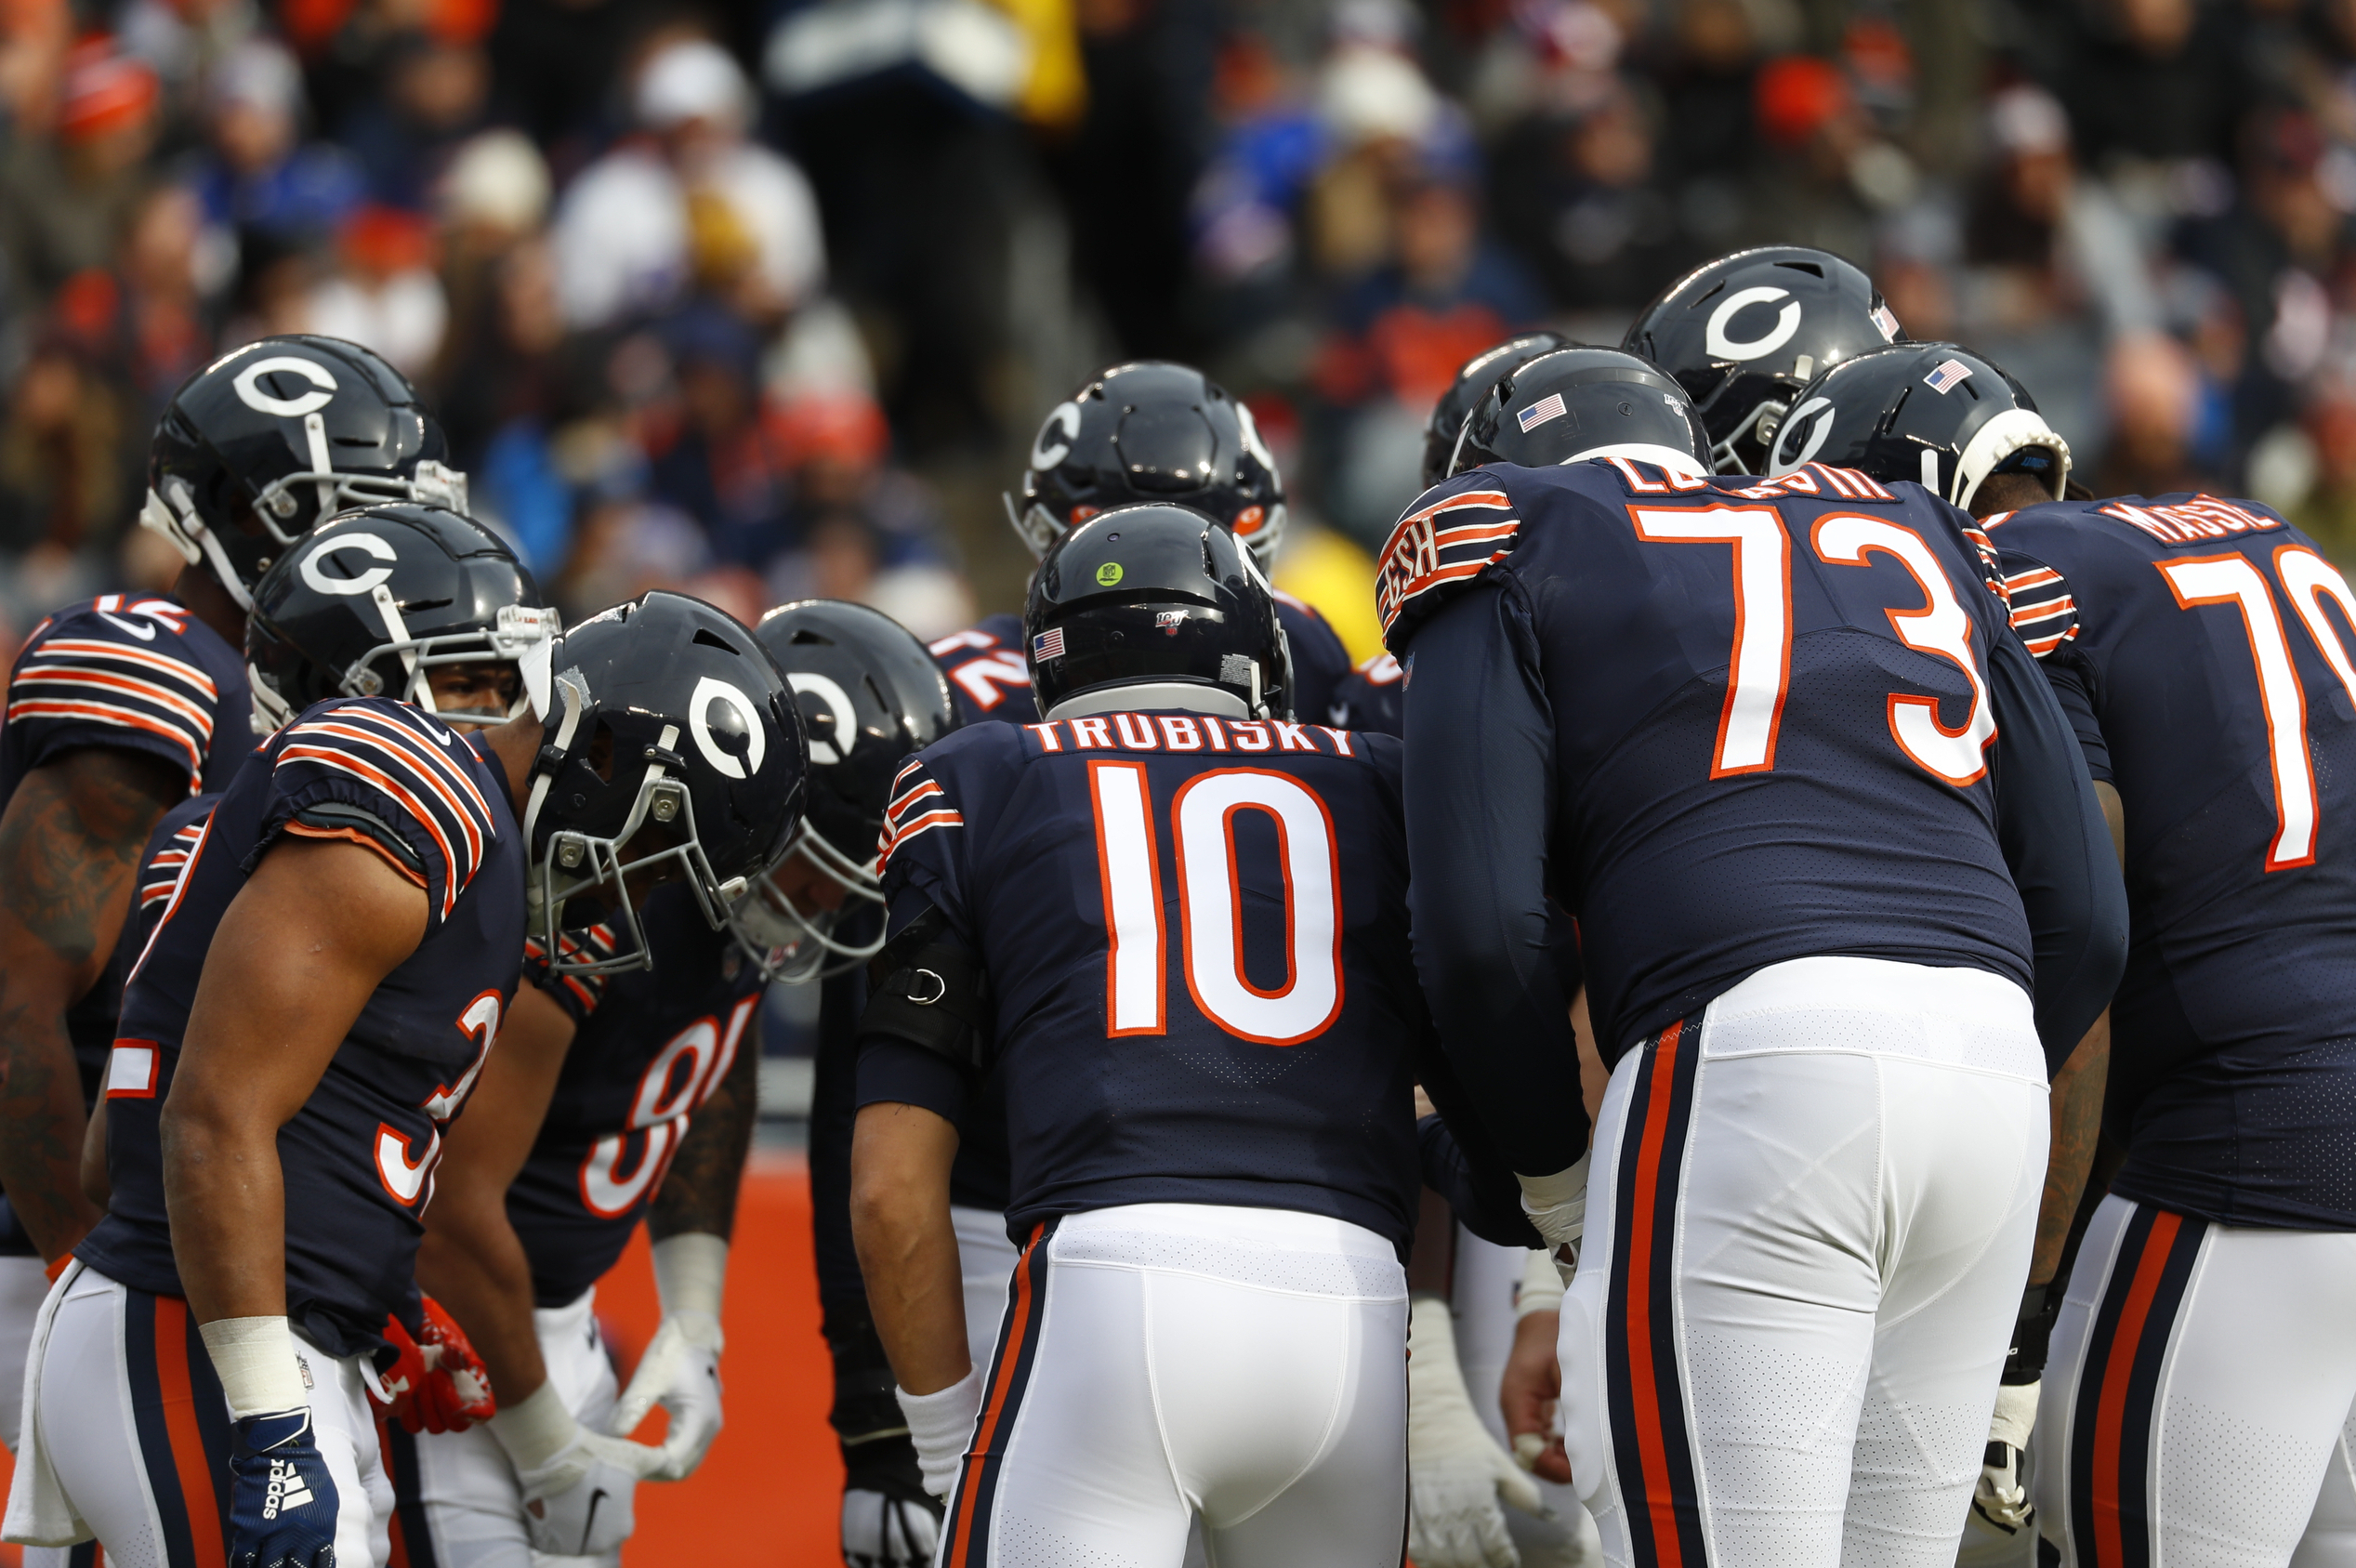 2020 Chicago Bears Schedule: Full Listing of Dates, Times and TV Info | Bleacher Report | Latest News, Videos and Highlights